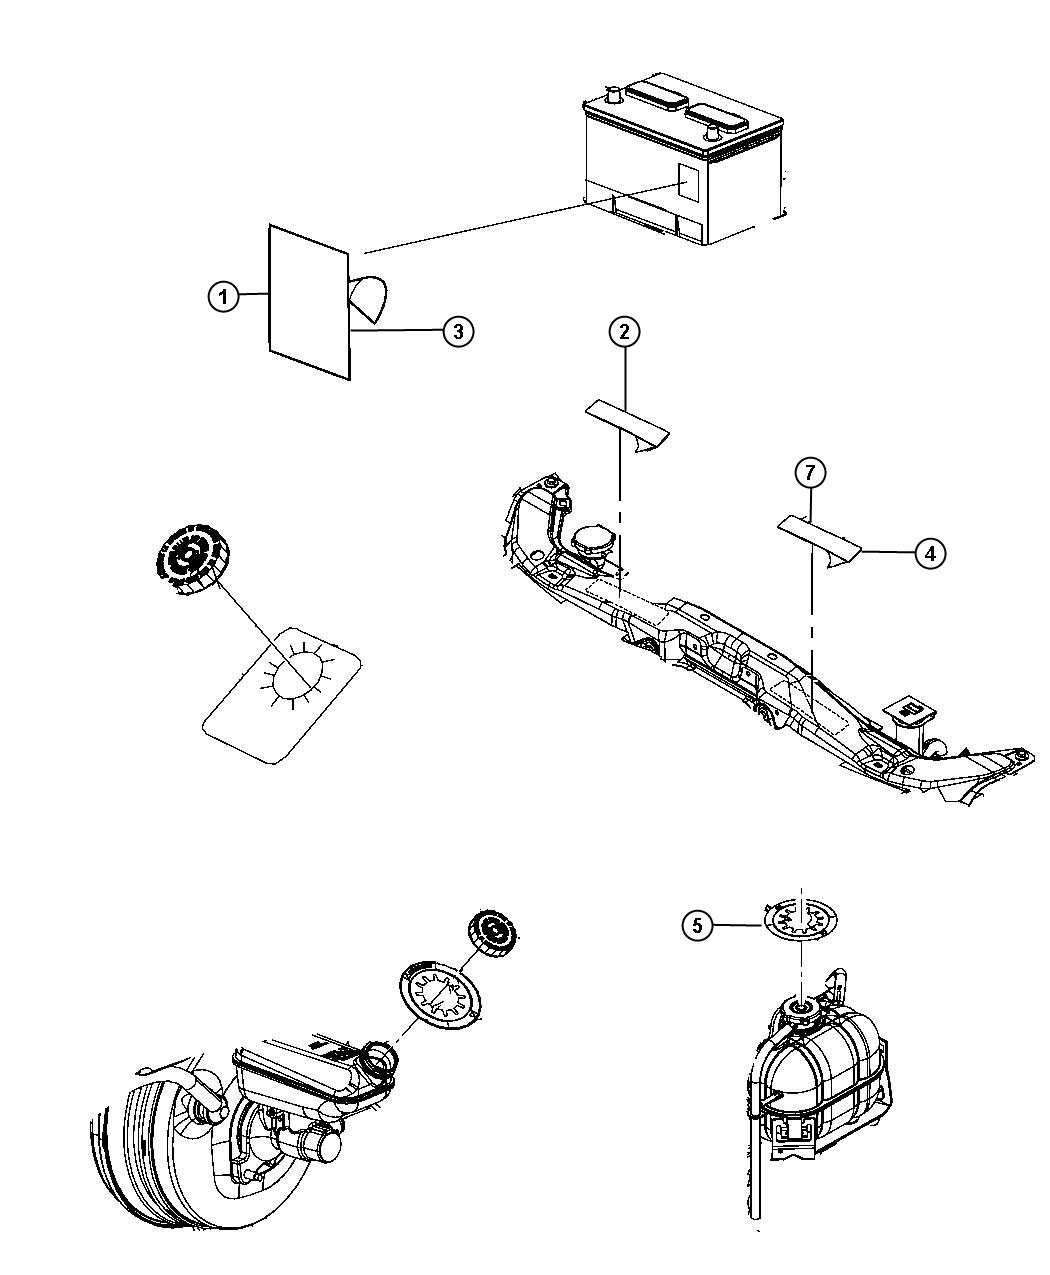 Jeep Liberty Label Air Conditioning System Refrigerant